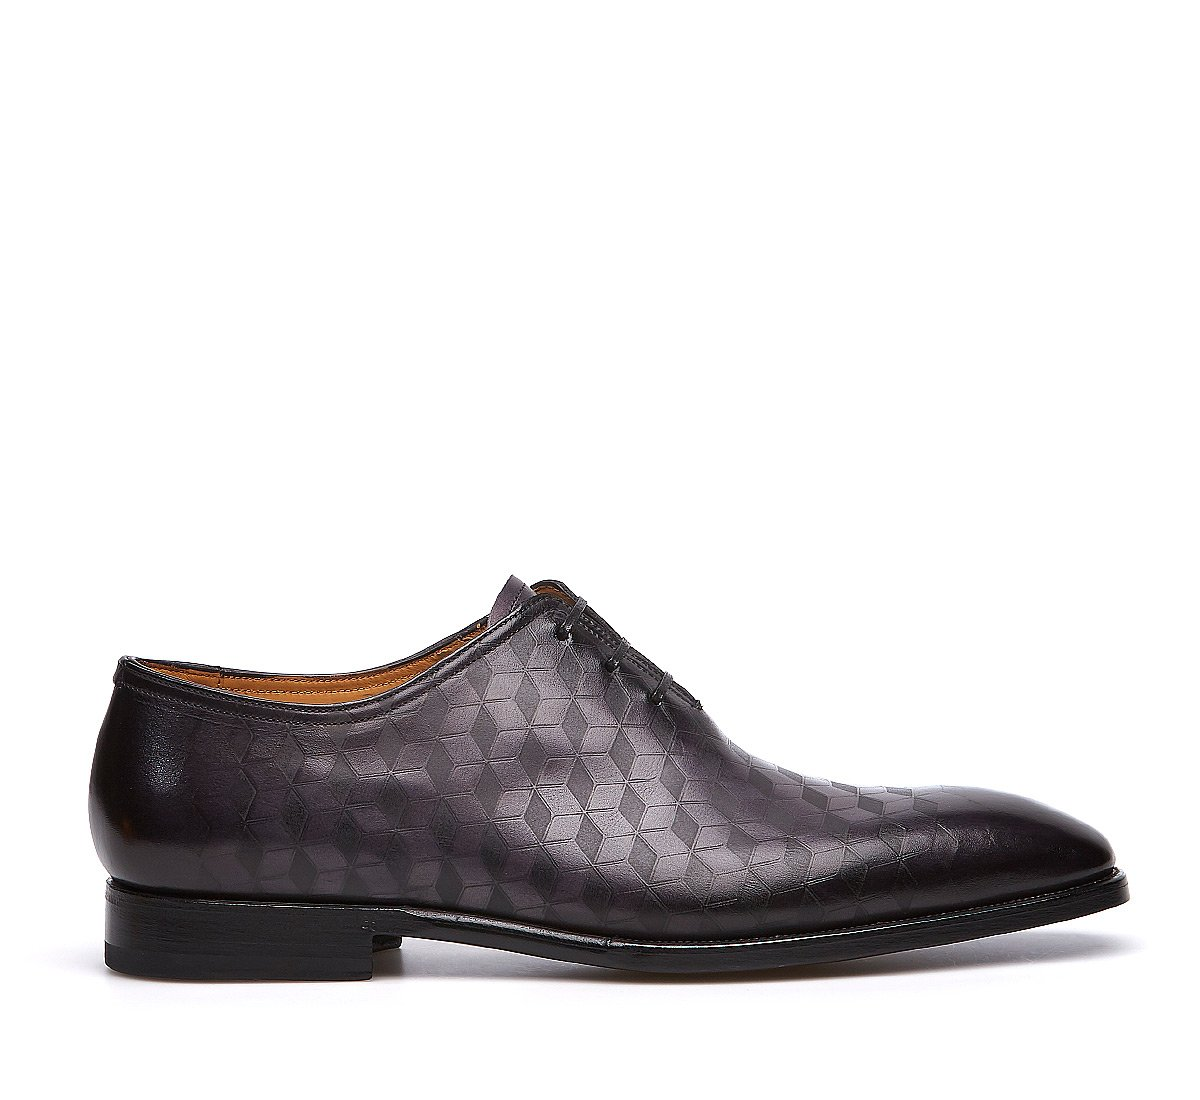 Fabi Flex lace-ups in exquisite, printed calfskin